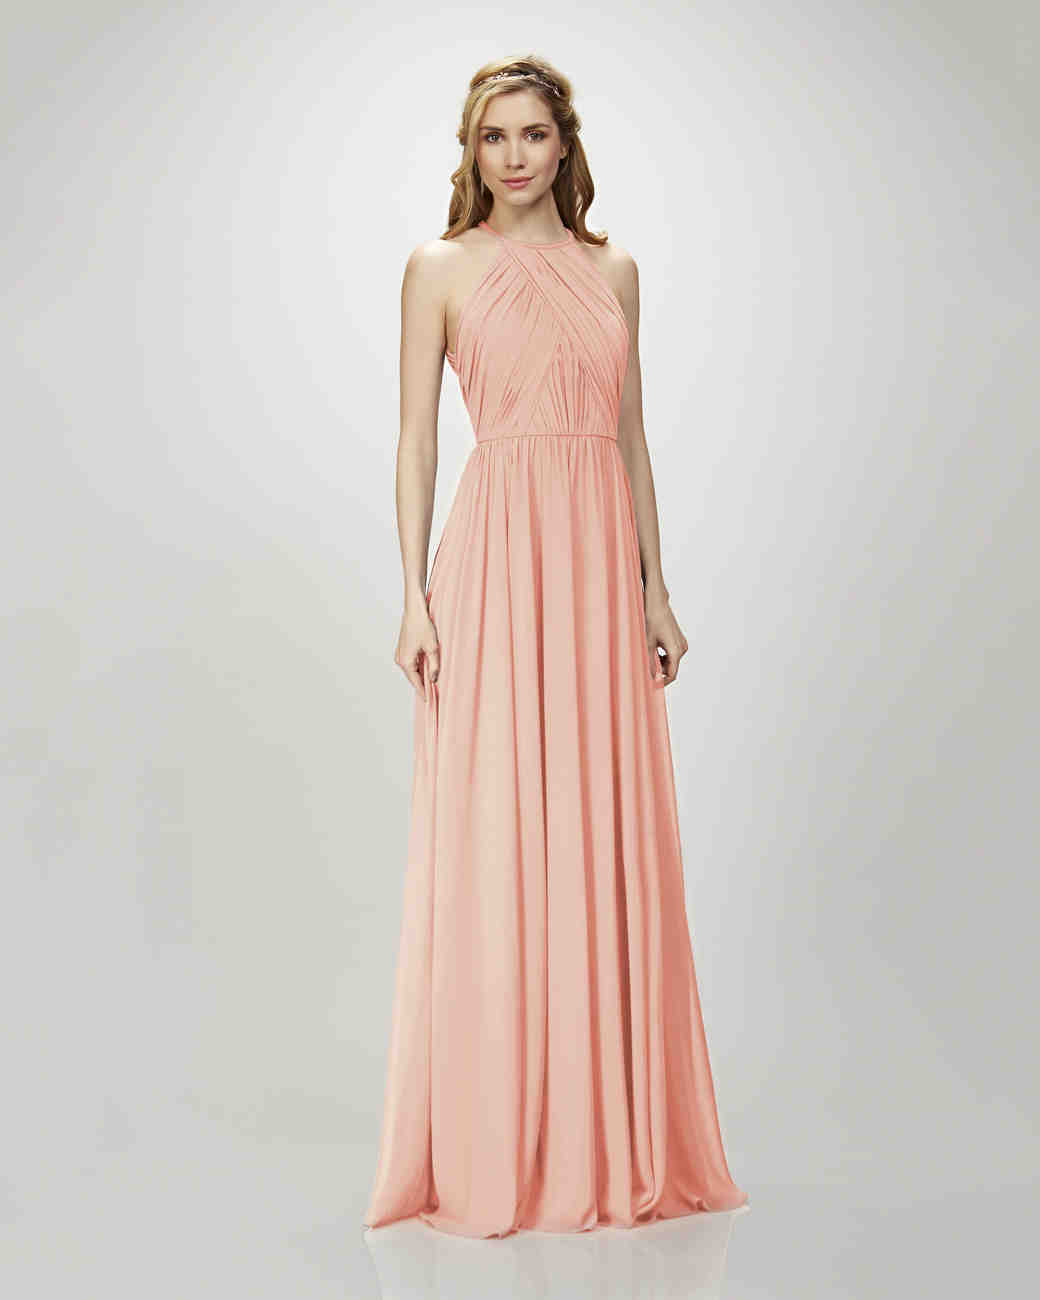 Coral bridesmaid dresses martha stewart weddings ombrellifo Image collections